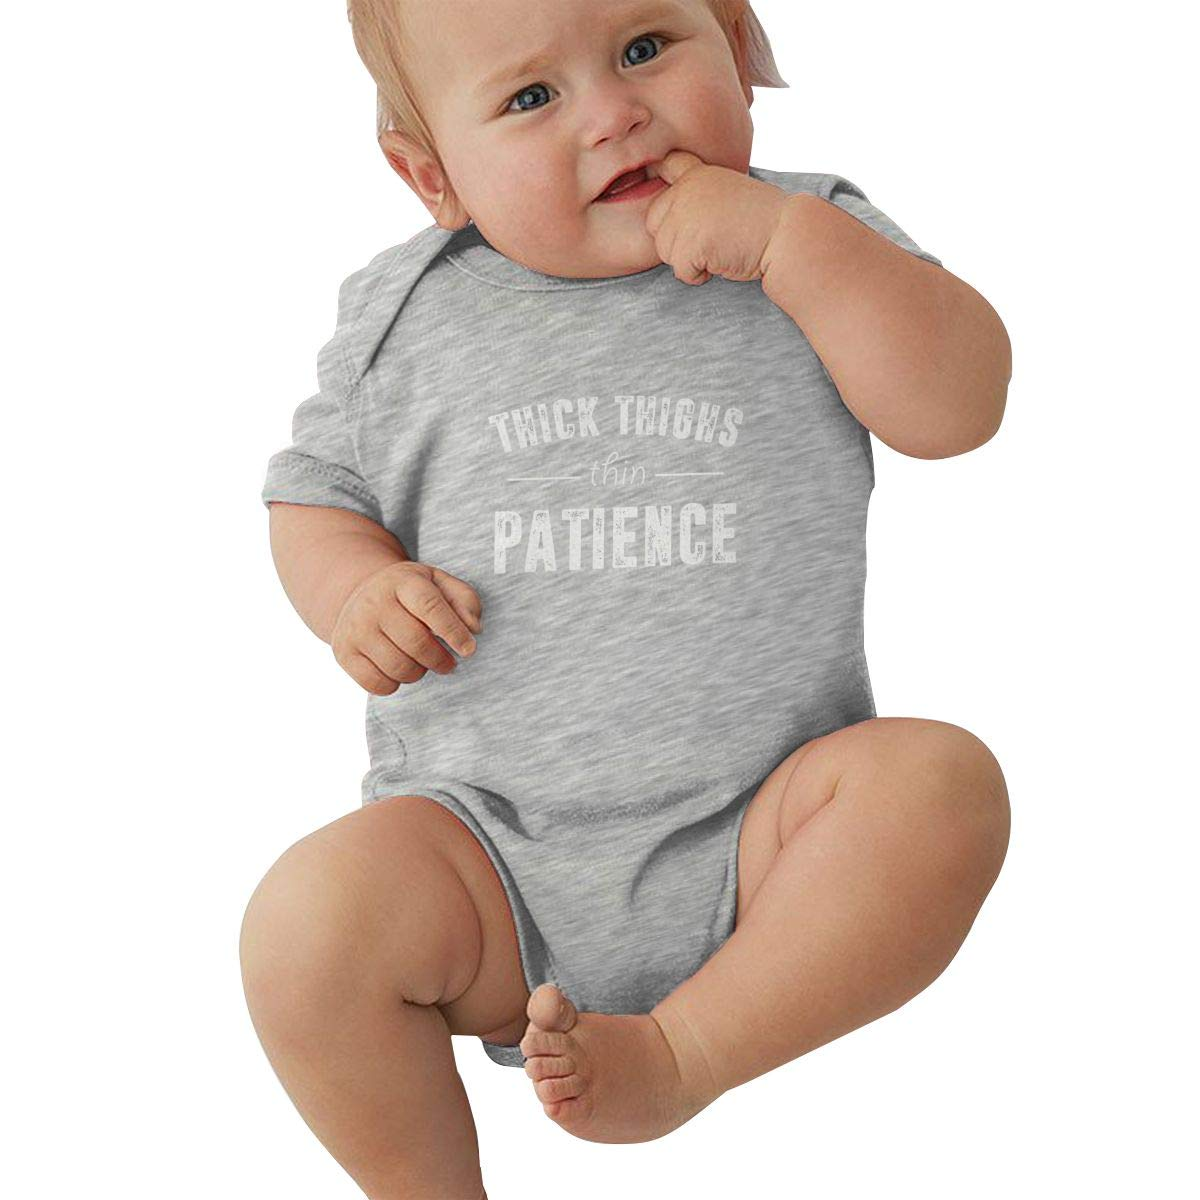 Dfenere Thick Thighs Thin Patience Retro Newborn Baby Short Sleeve Bodysuit Romper Infant Summer Clothing Black